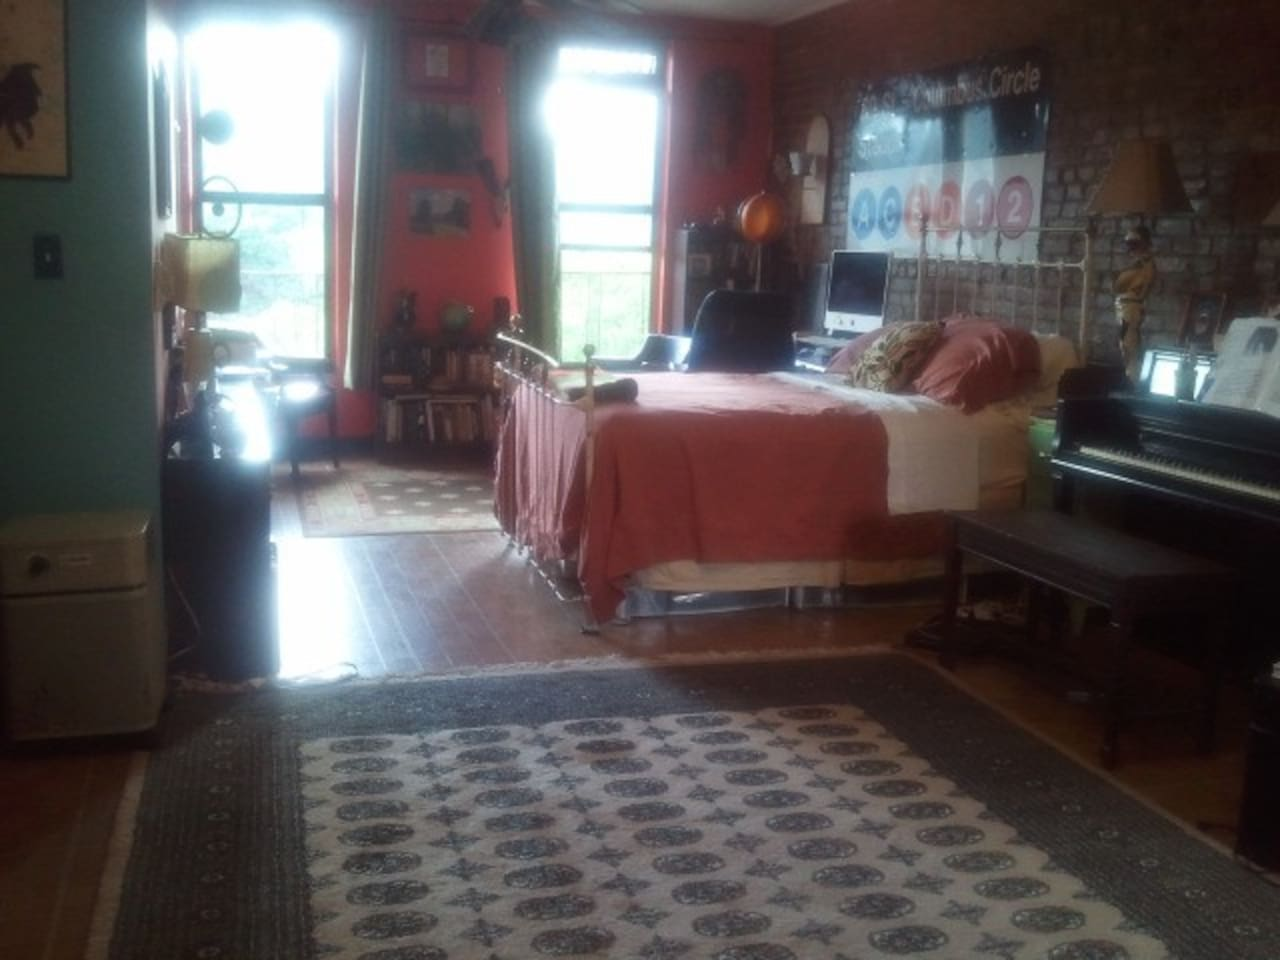 the room is virtually your own studio apartment. Exposed brick and antique furnishings add to the relaxing feel.